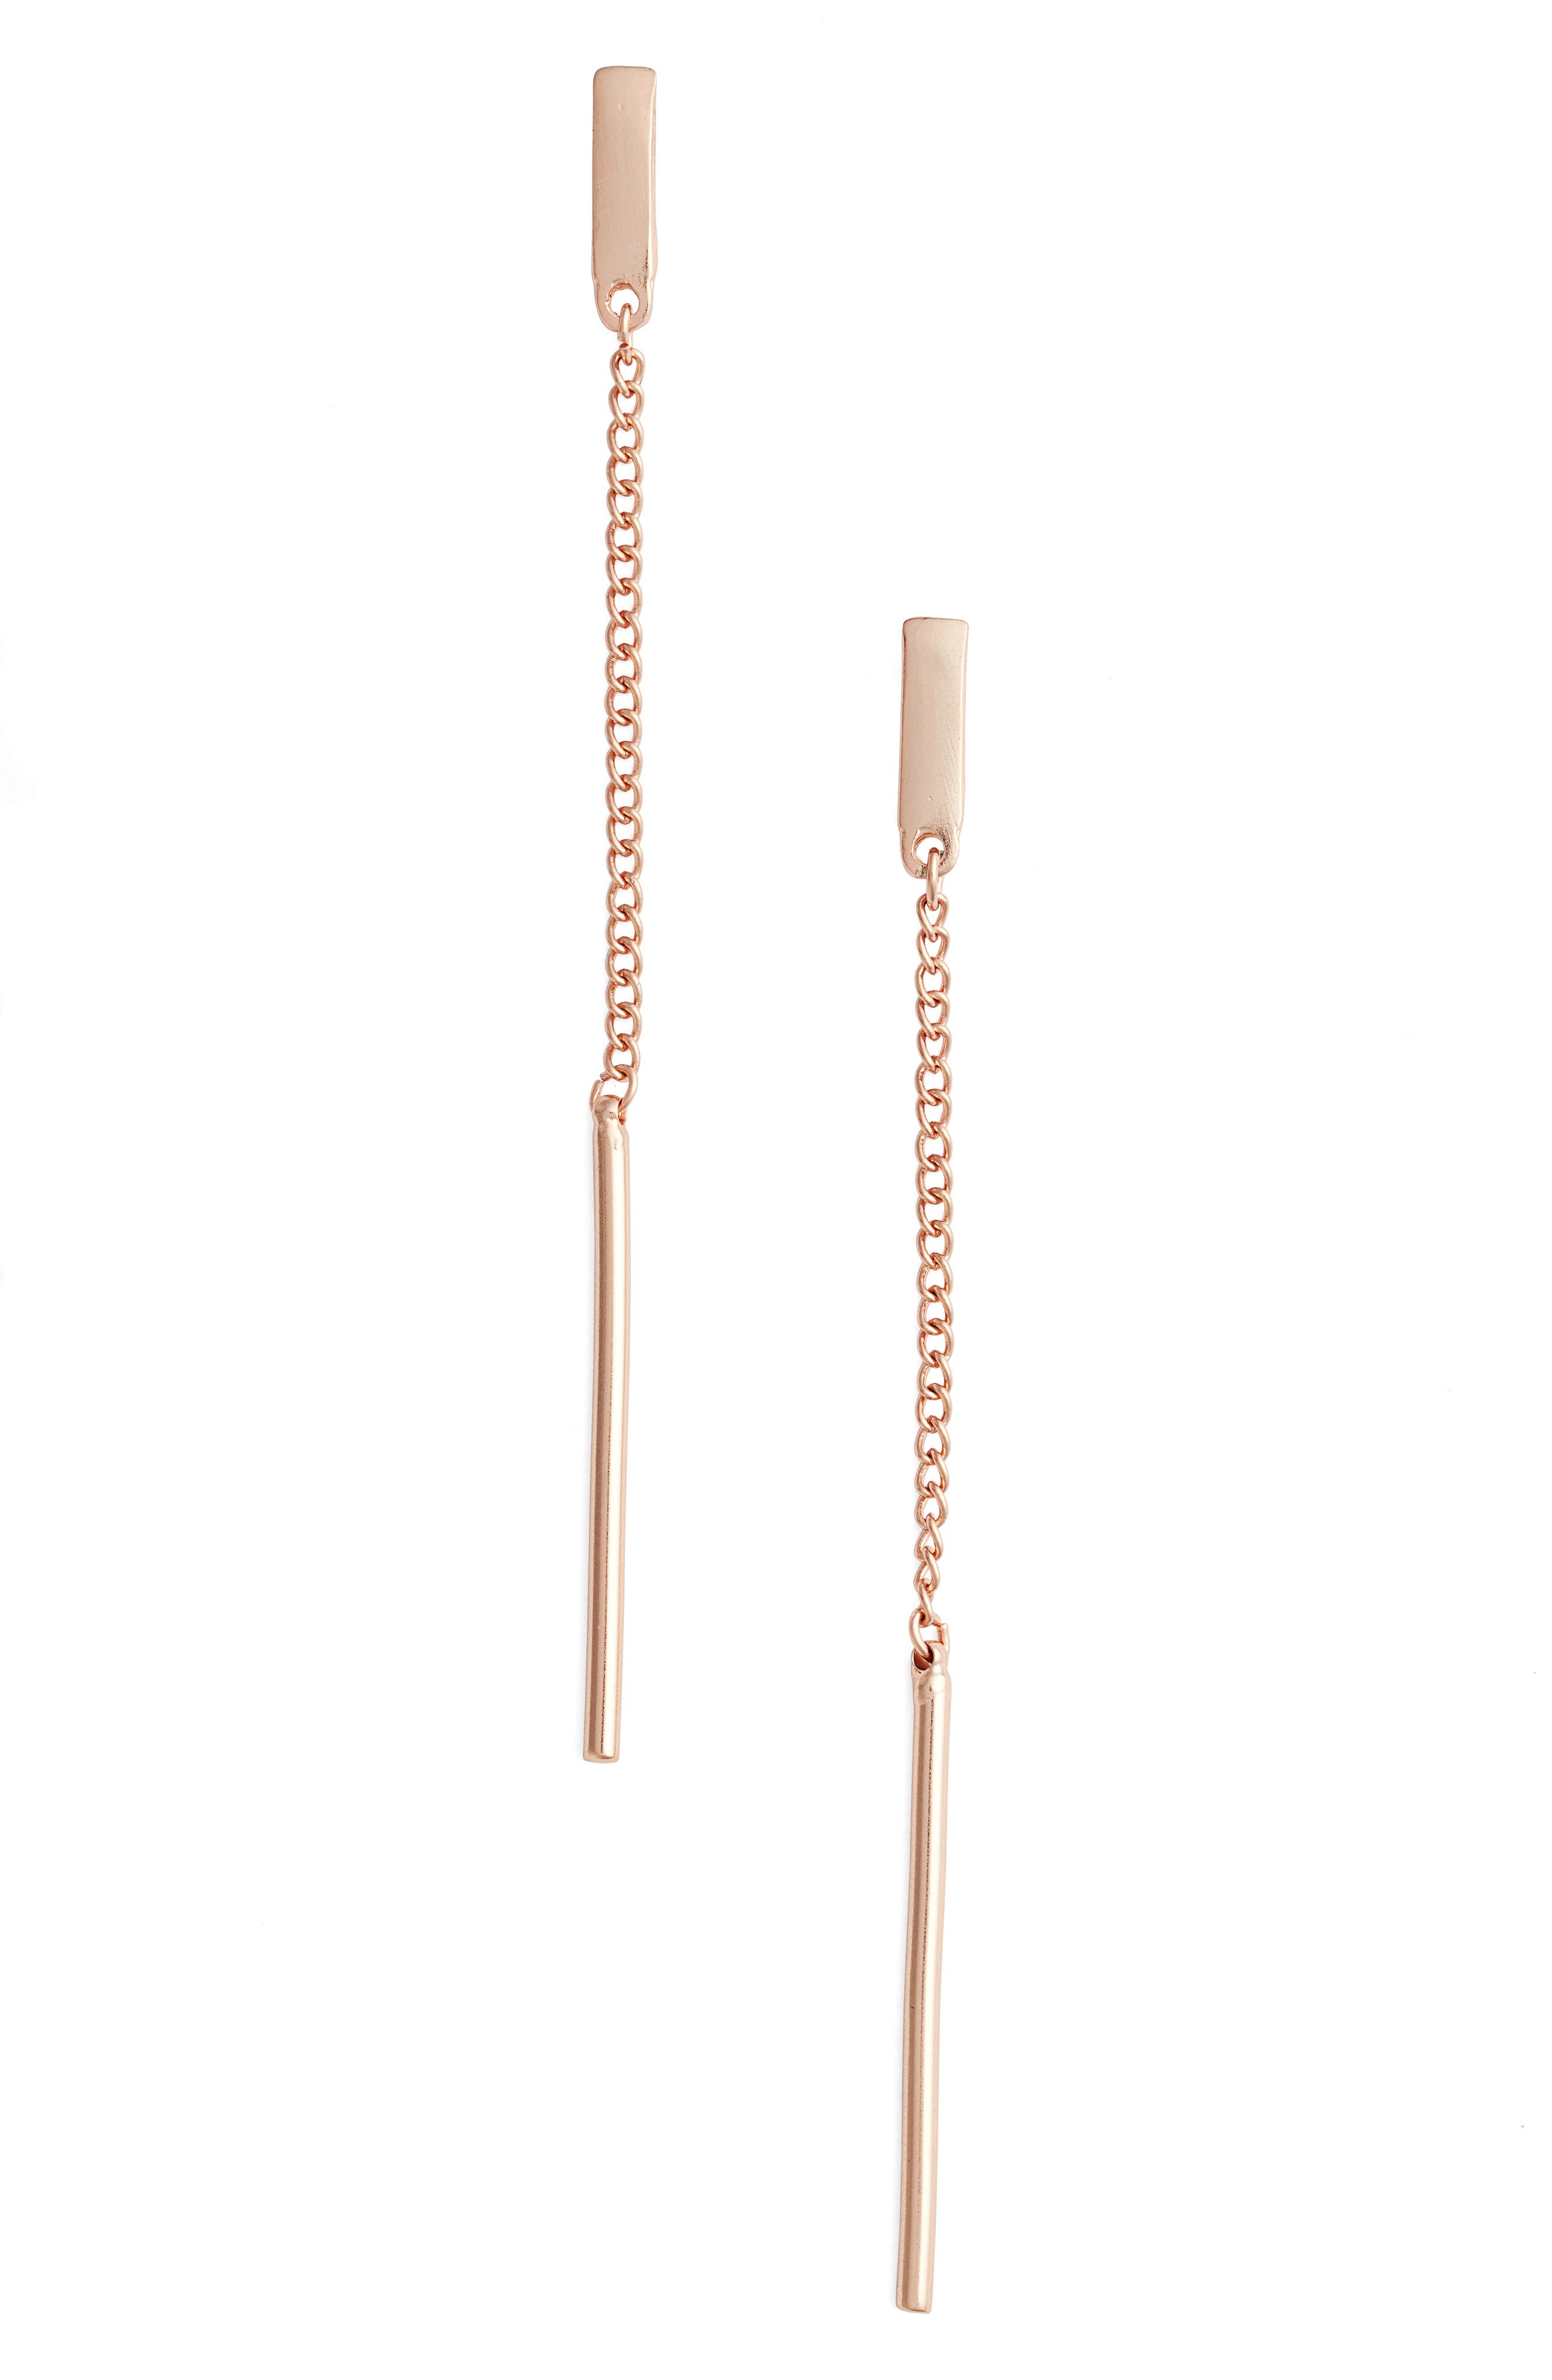 Karine Sultan Linear Earrings